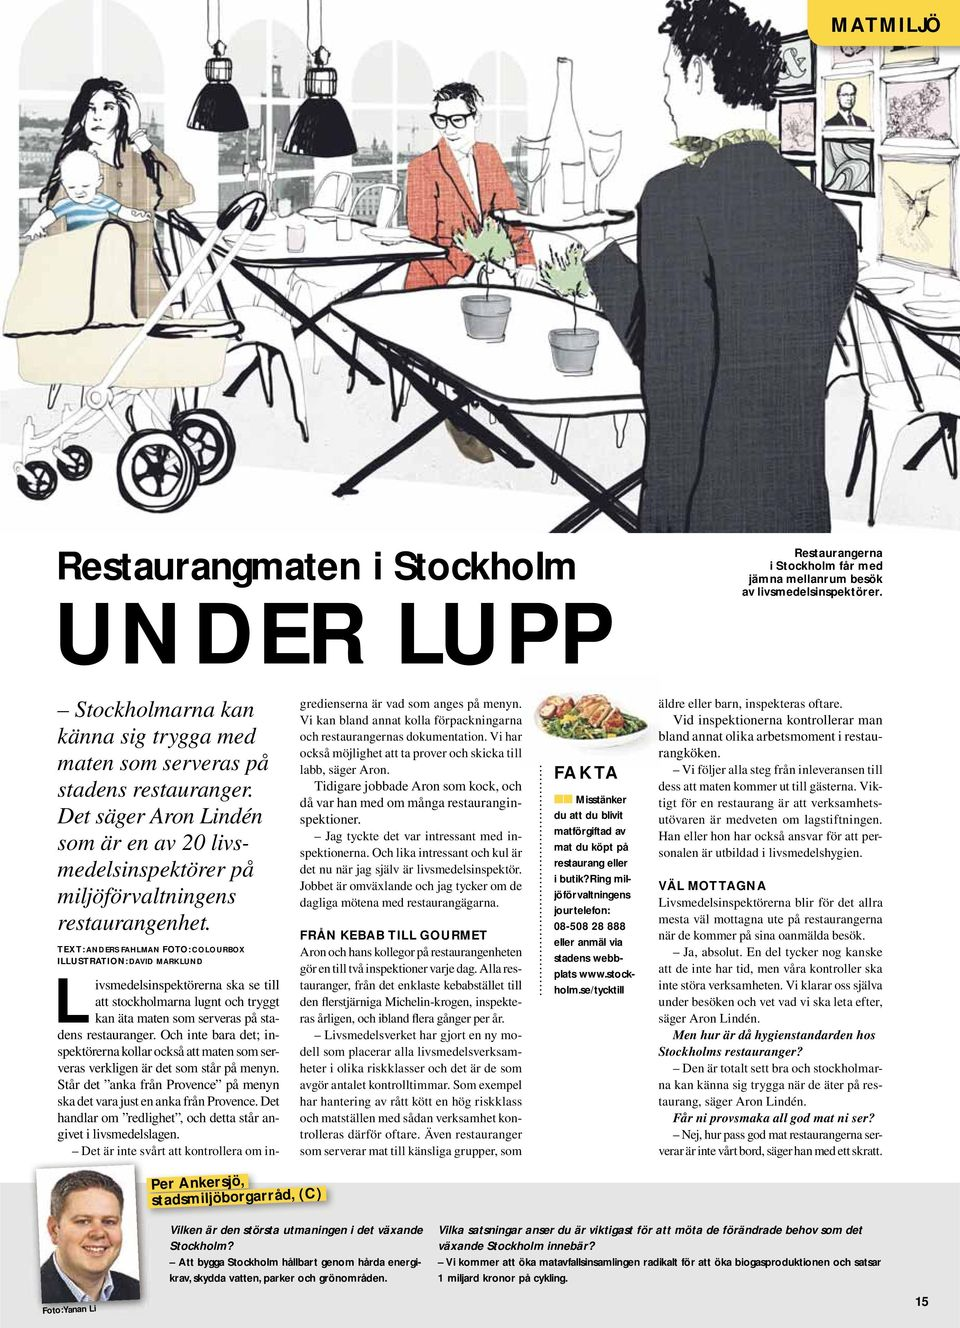 TEXT: ANDERS FAHLMAN FOTO: COLOURBOX ILLUSTRATION: DAVID MARKLUND Per Ankersjö, stadsmiljöborgarråd, (C) Livsmedelsinspektörerna ska se till att stockholmarna lugnt och tryggt kan äta maten som